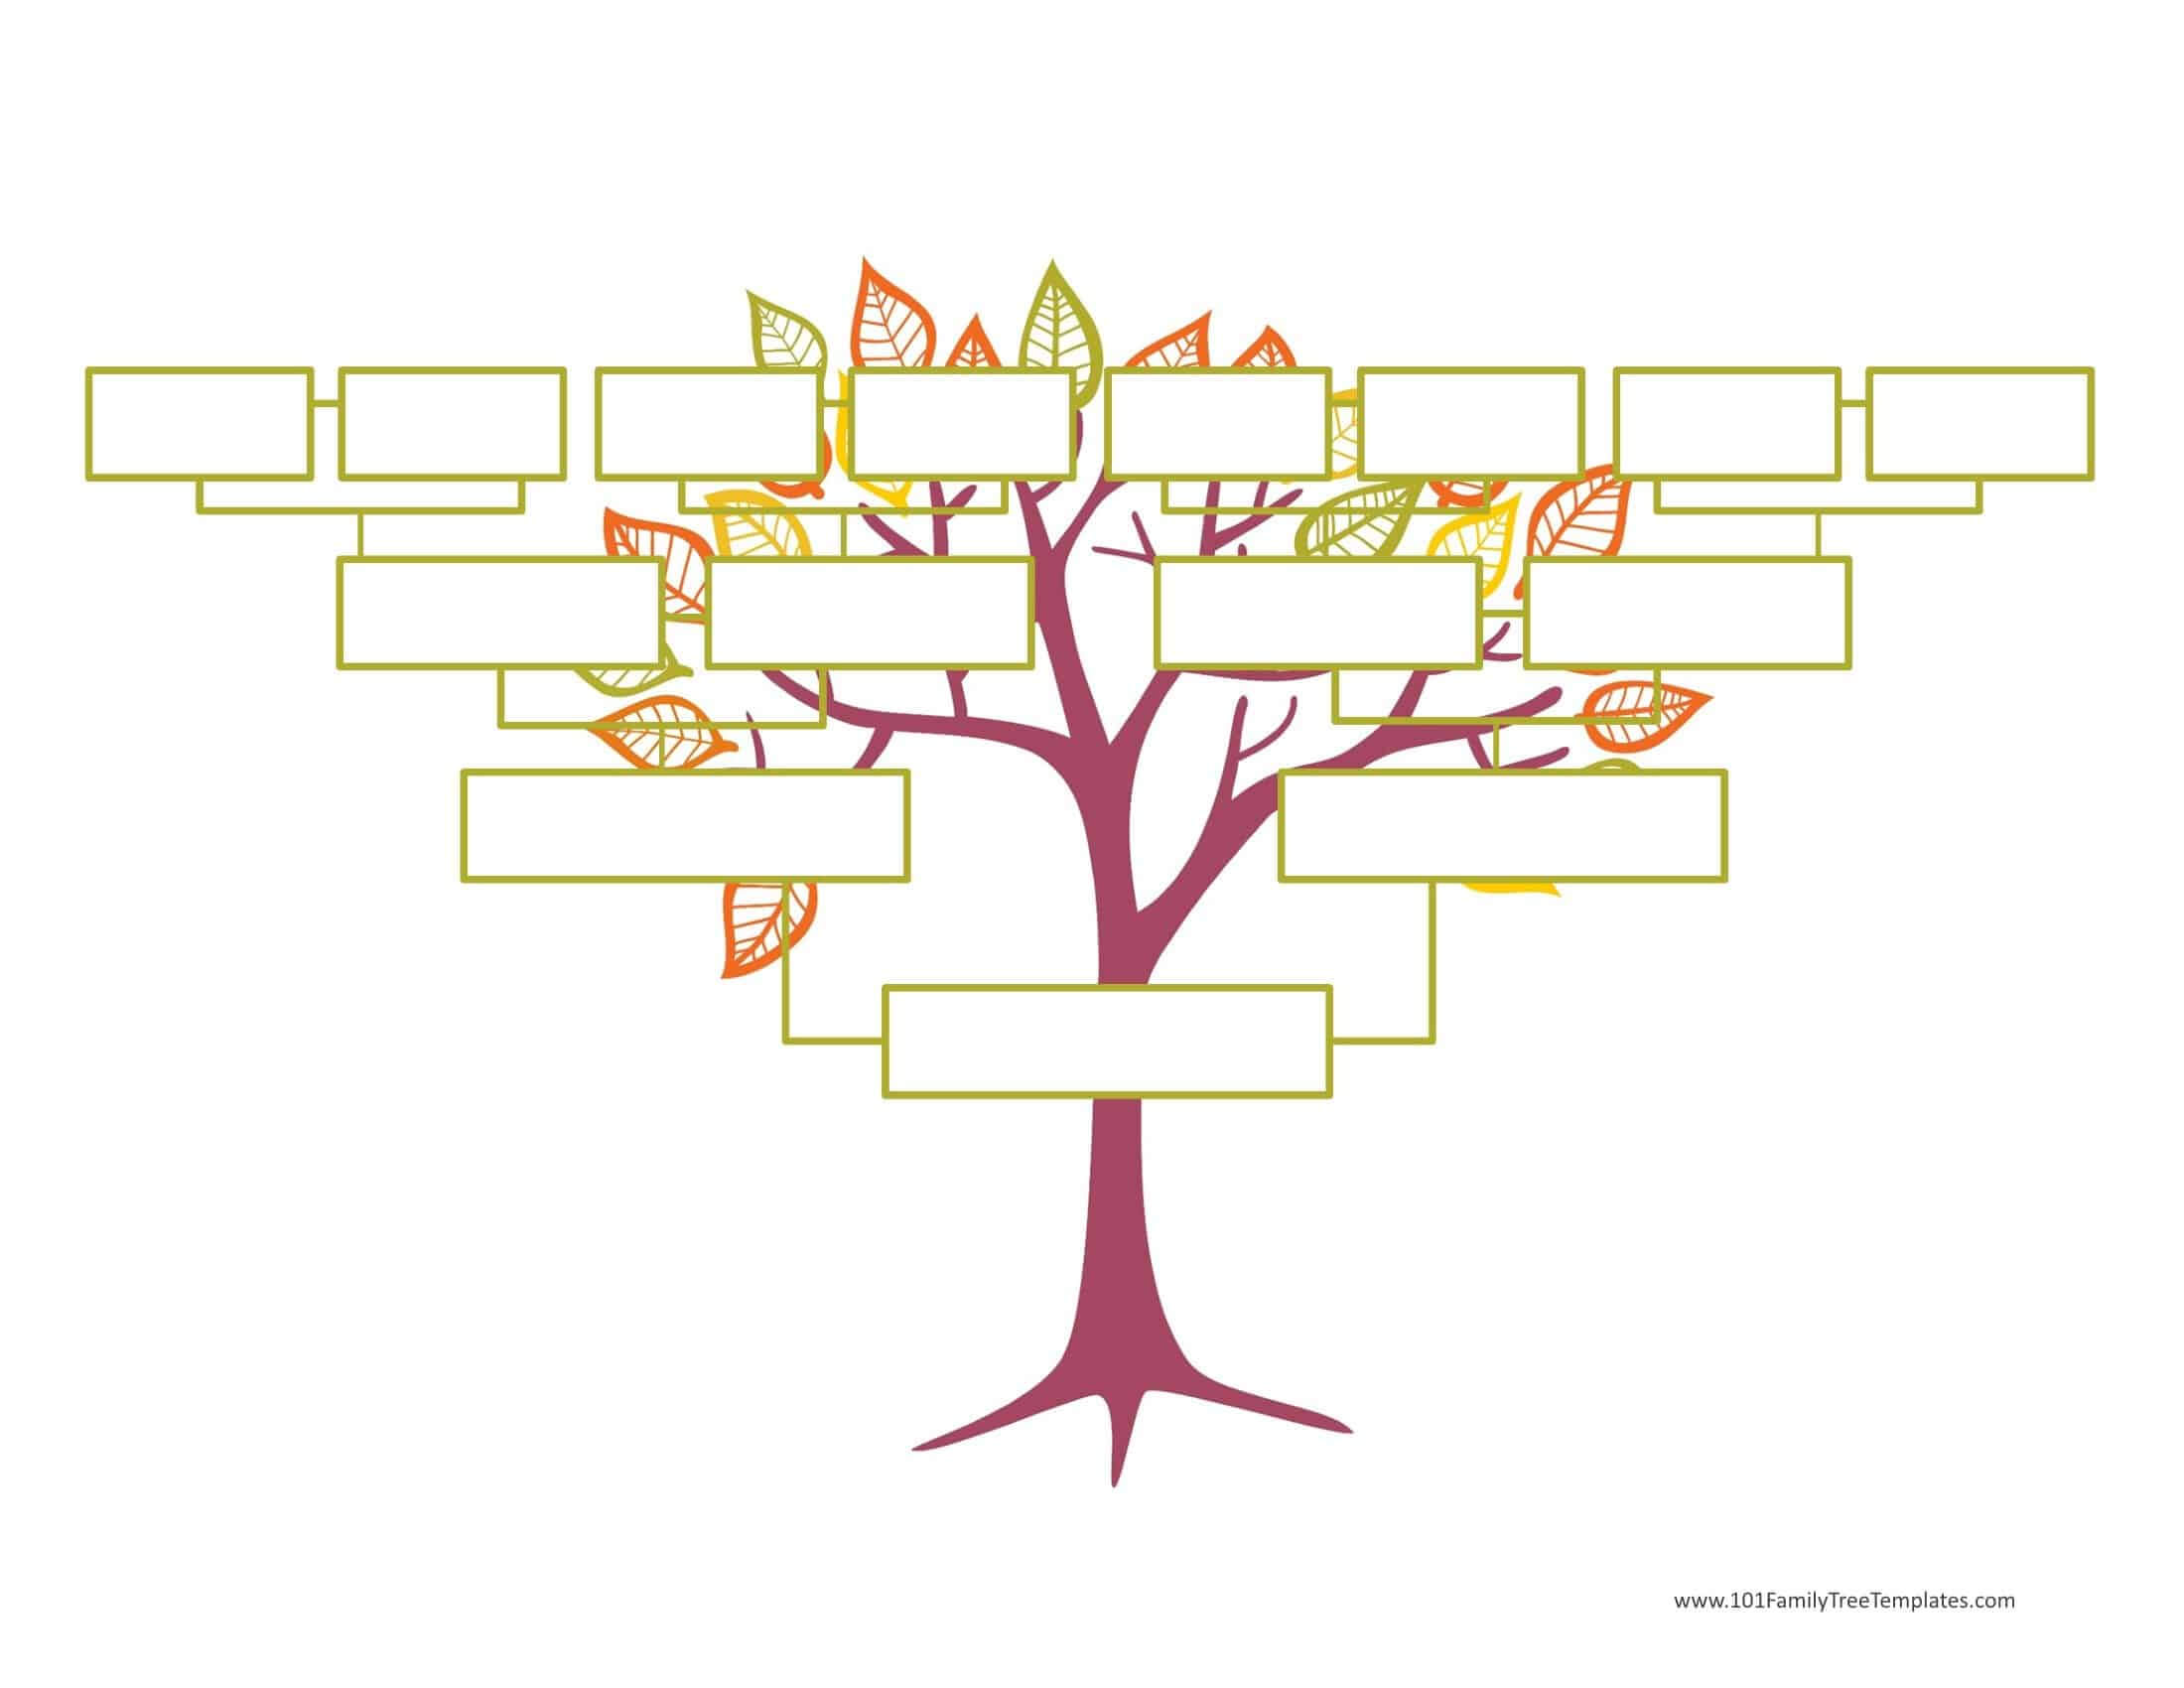 Blank Family Tree Template   Free Instant Download Regarding Fill In The Blank Family Tree Template